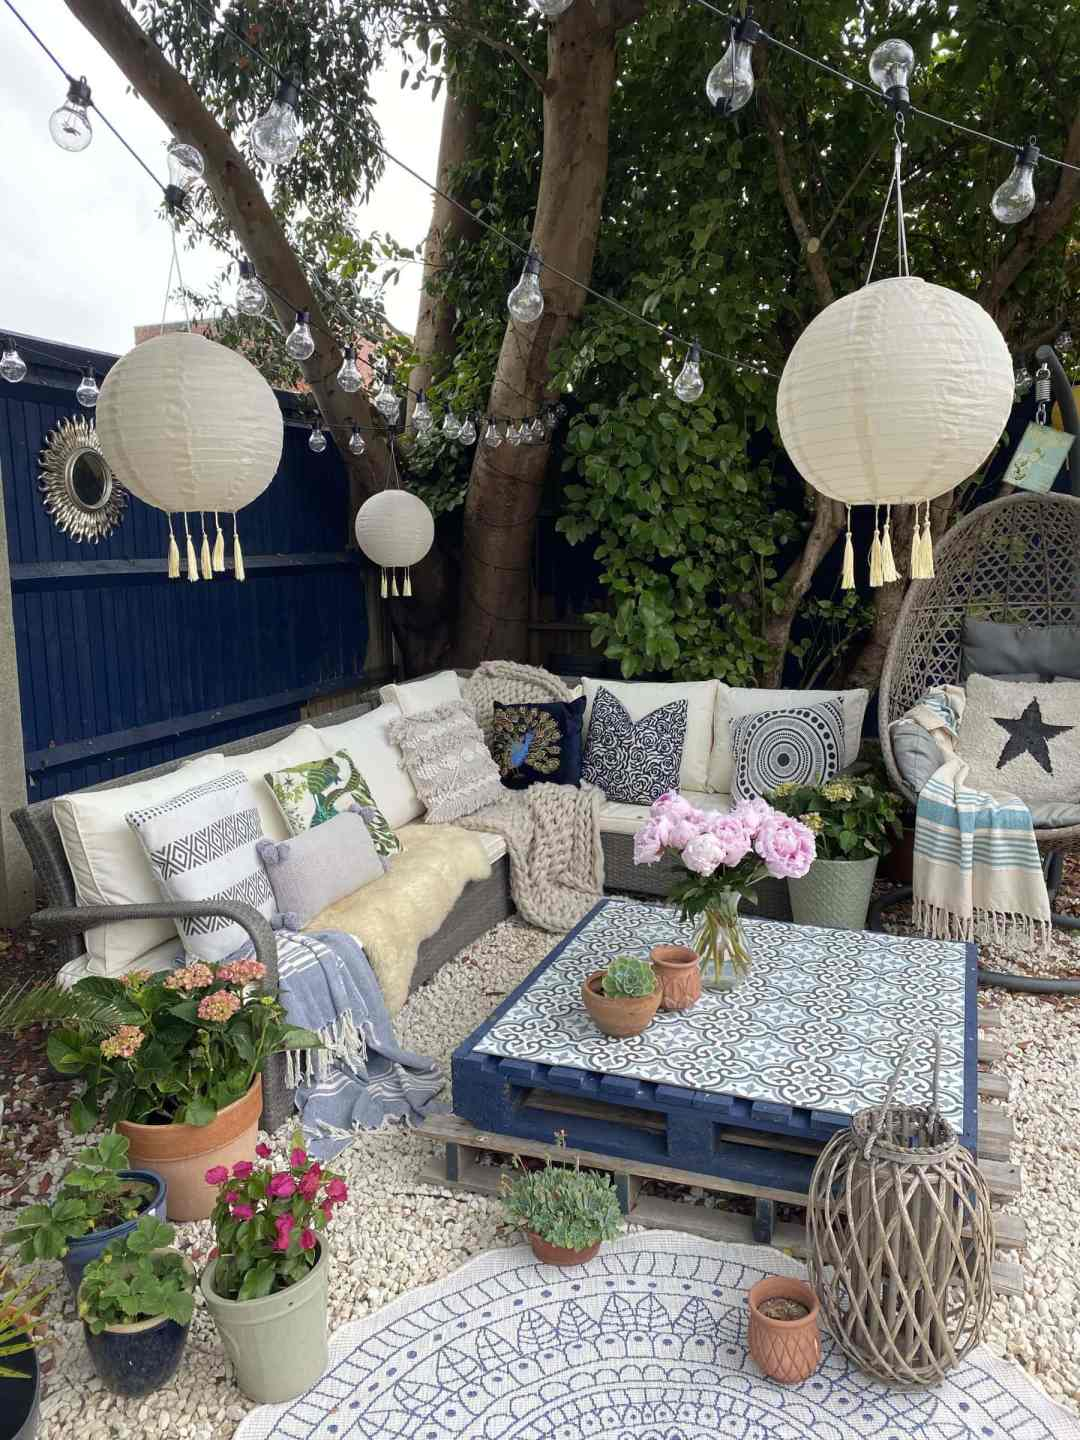 The Best Outdoor Textiles to Cosy Up Your Garden Space